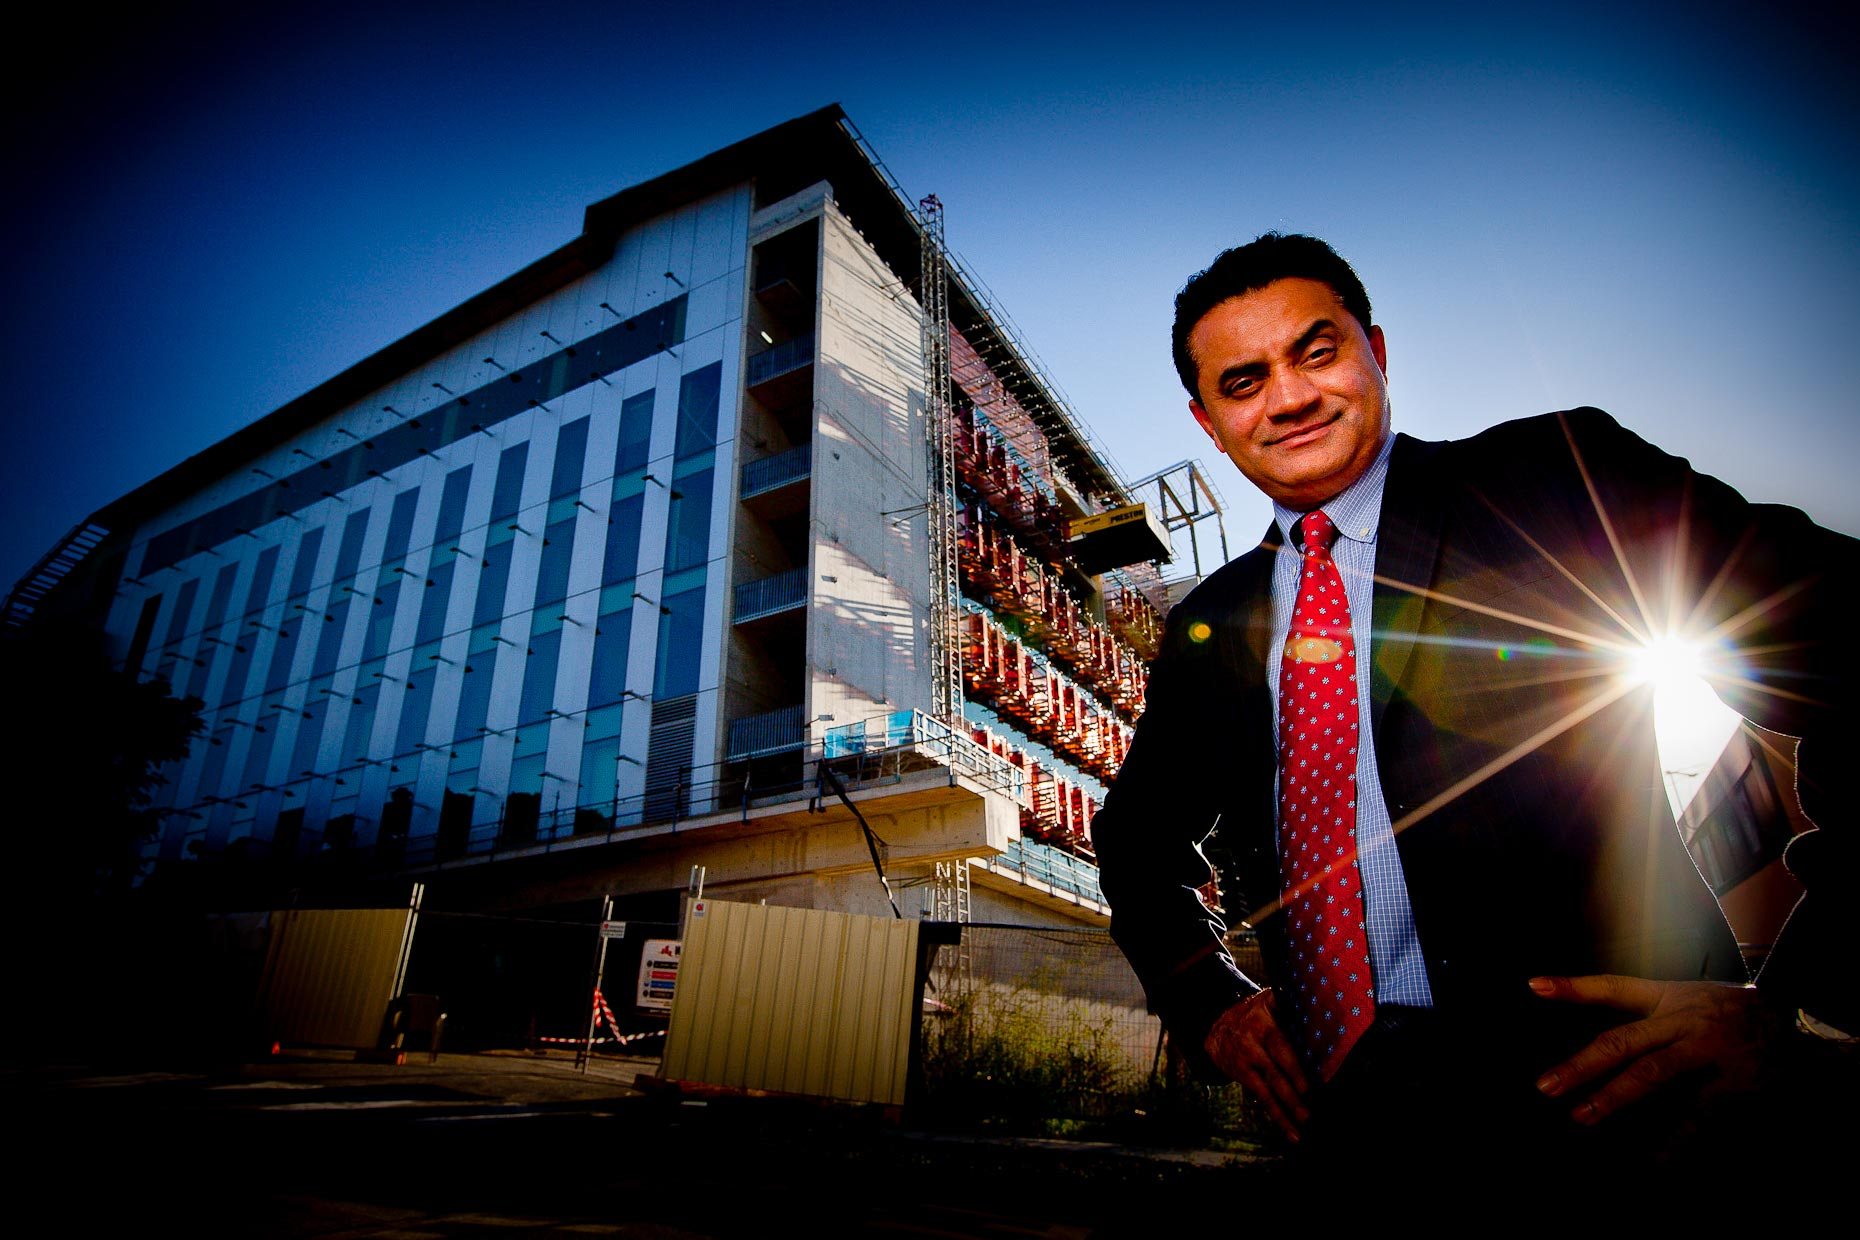 Finance_ExecutivePortraits_ArunSharma _PatrickHamilton.jpg